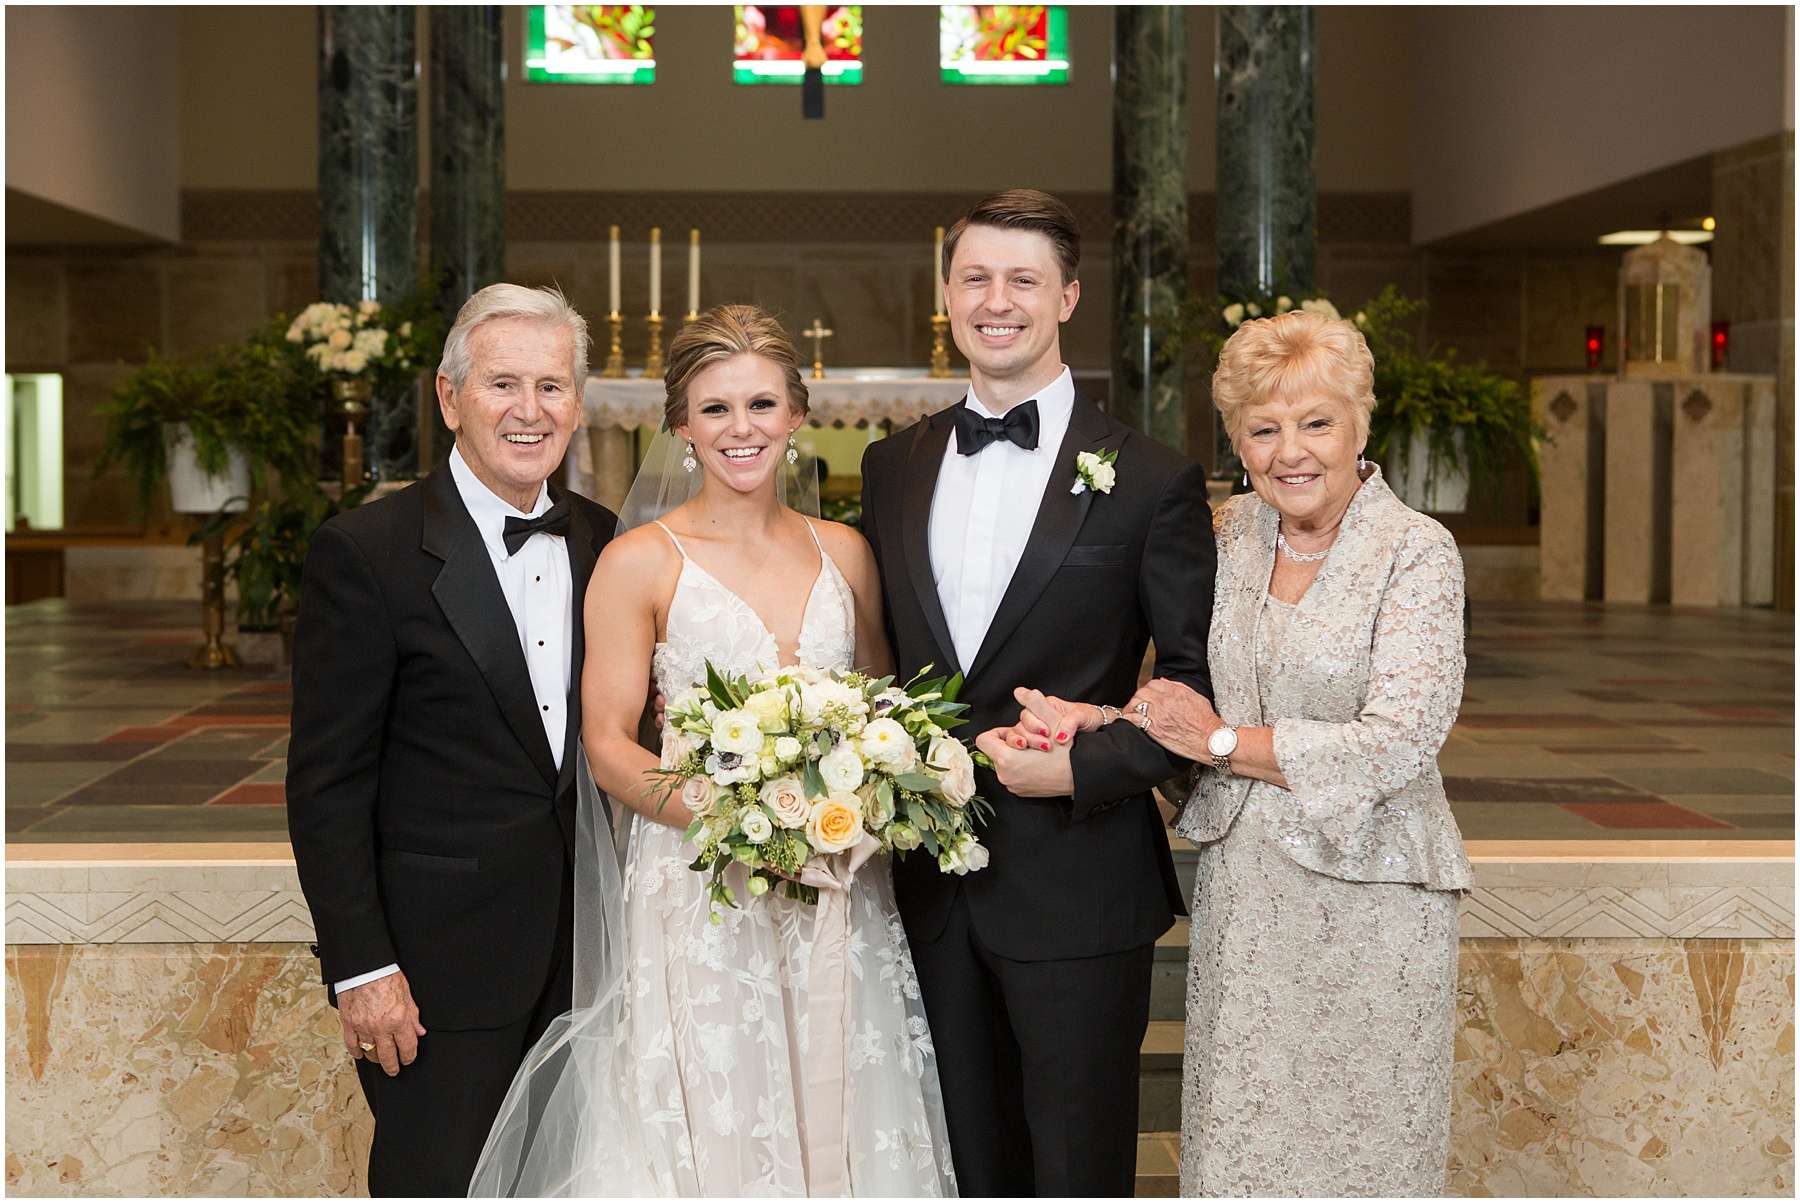 Wedding at the Ohio Statehouse | Columbus Ohio Weddings 124